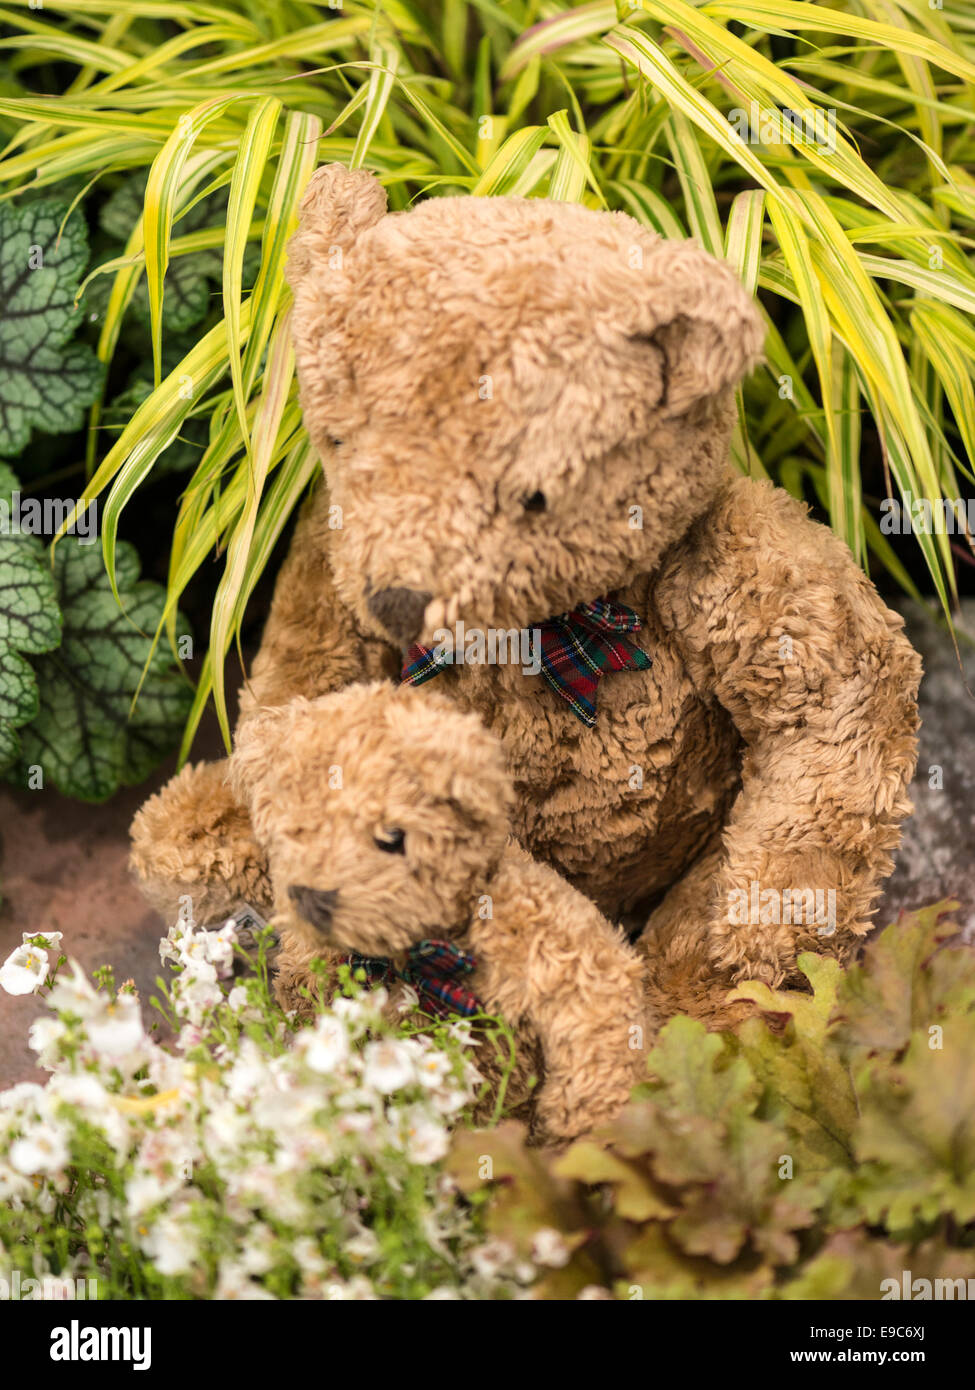 Garden Teddy Bears amongst white flowers and green foliage - Stock Image